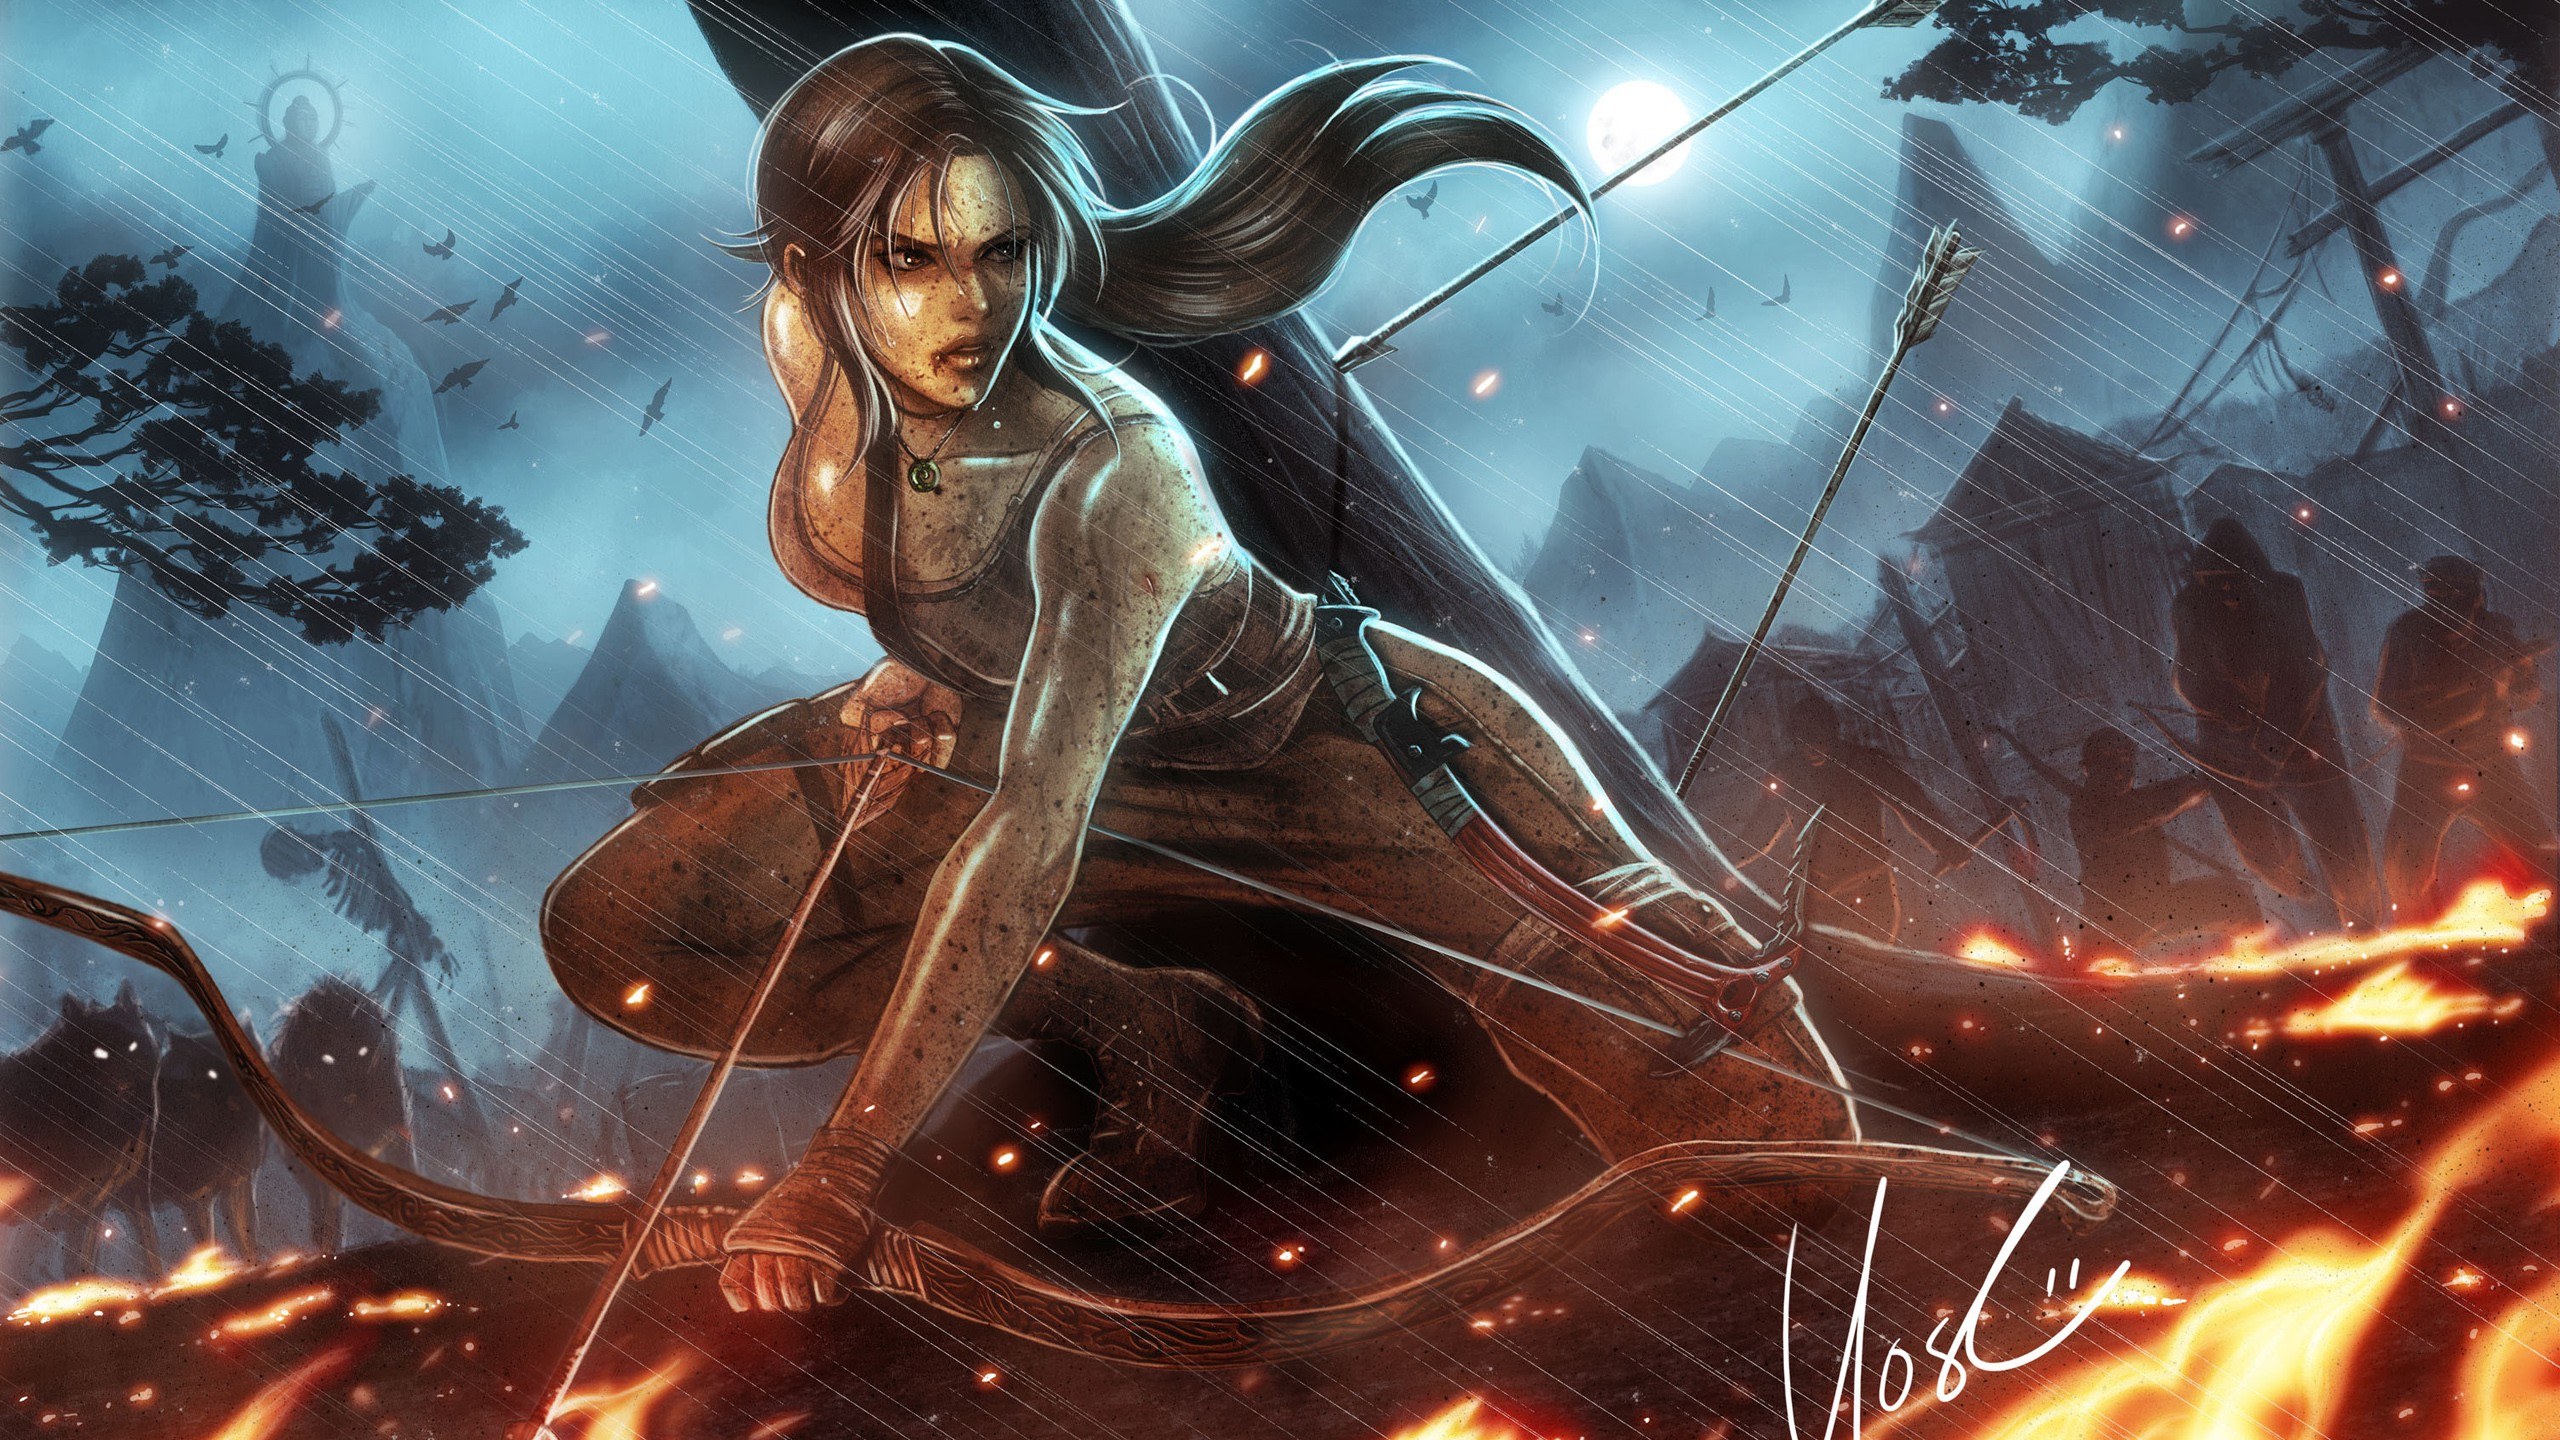 tomb-raider-lara-croft-brunette-bow-arrow-rain